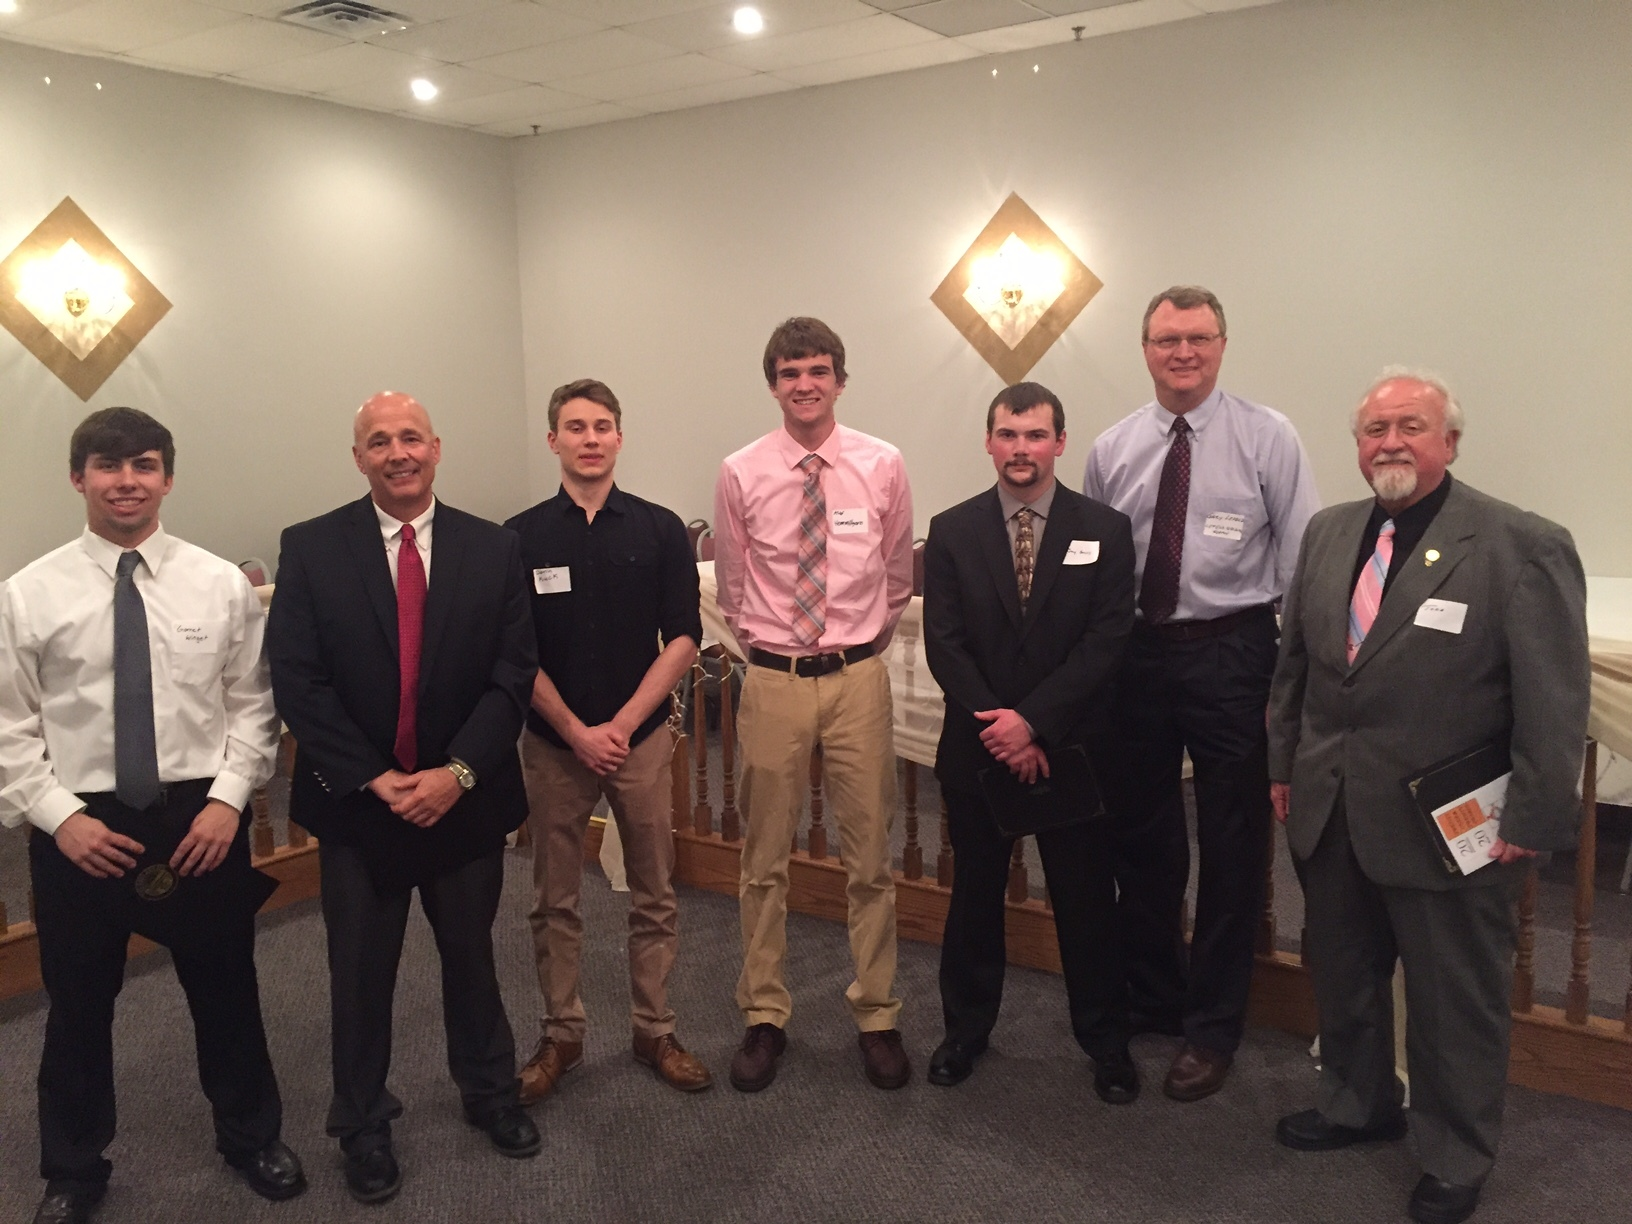 Darke/Auglaize/Mercer Twenty Under Twenty Banquet: Featured Image 2